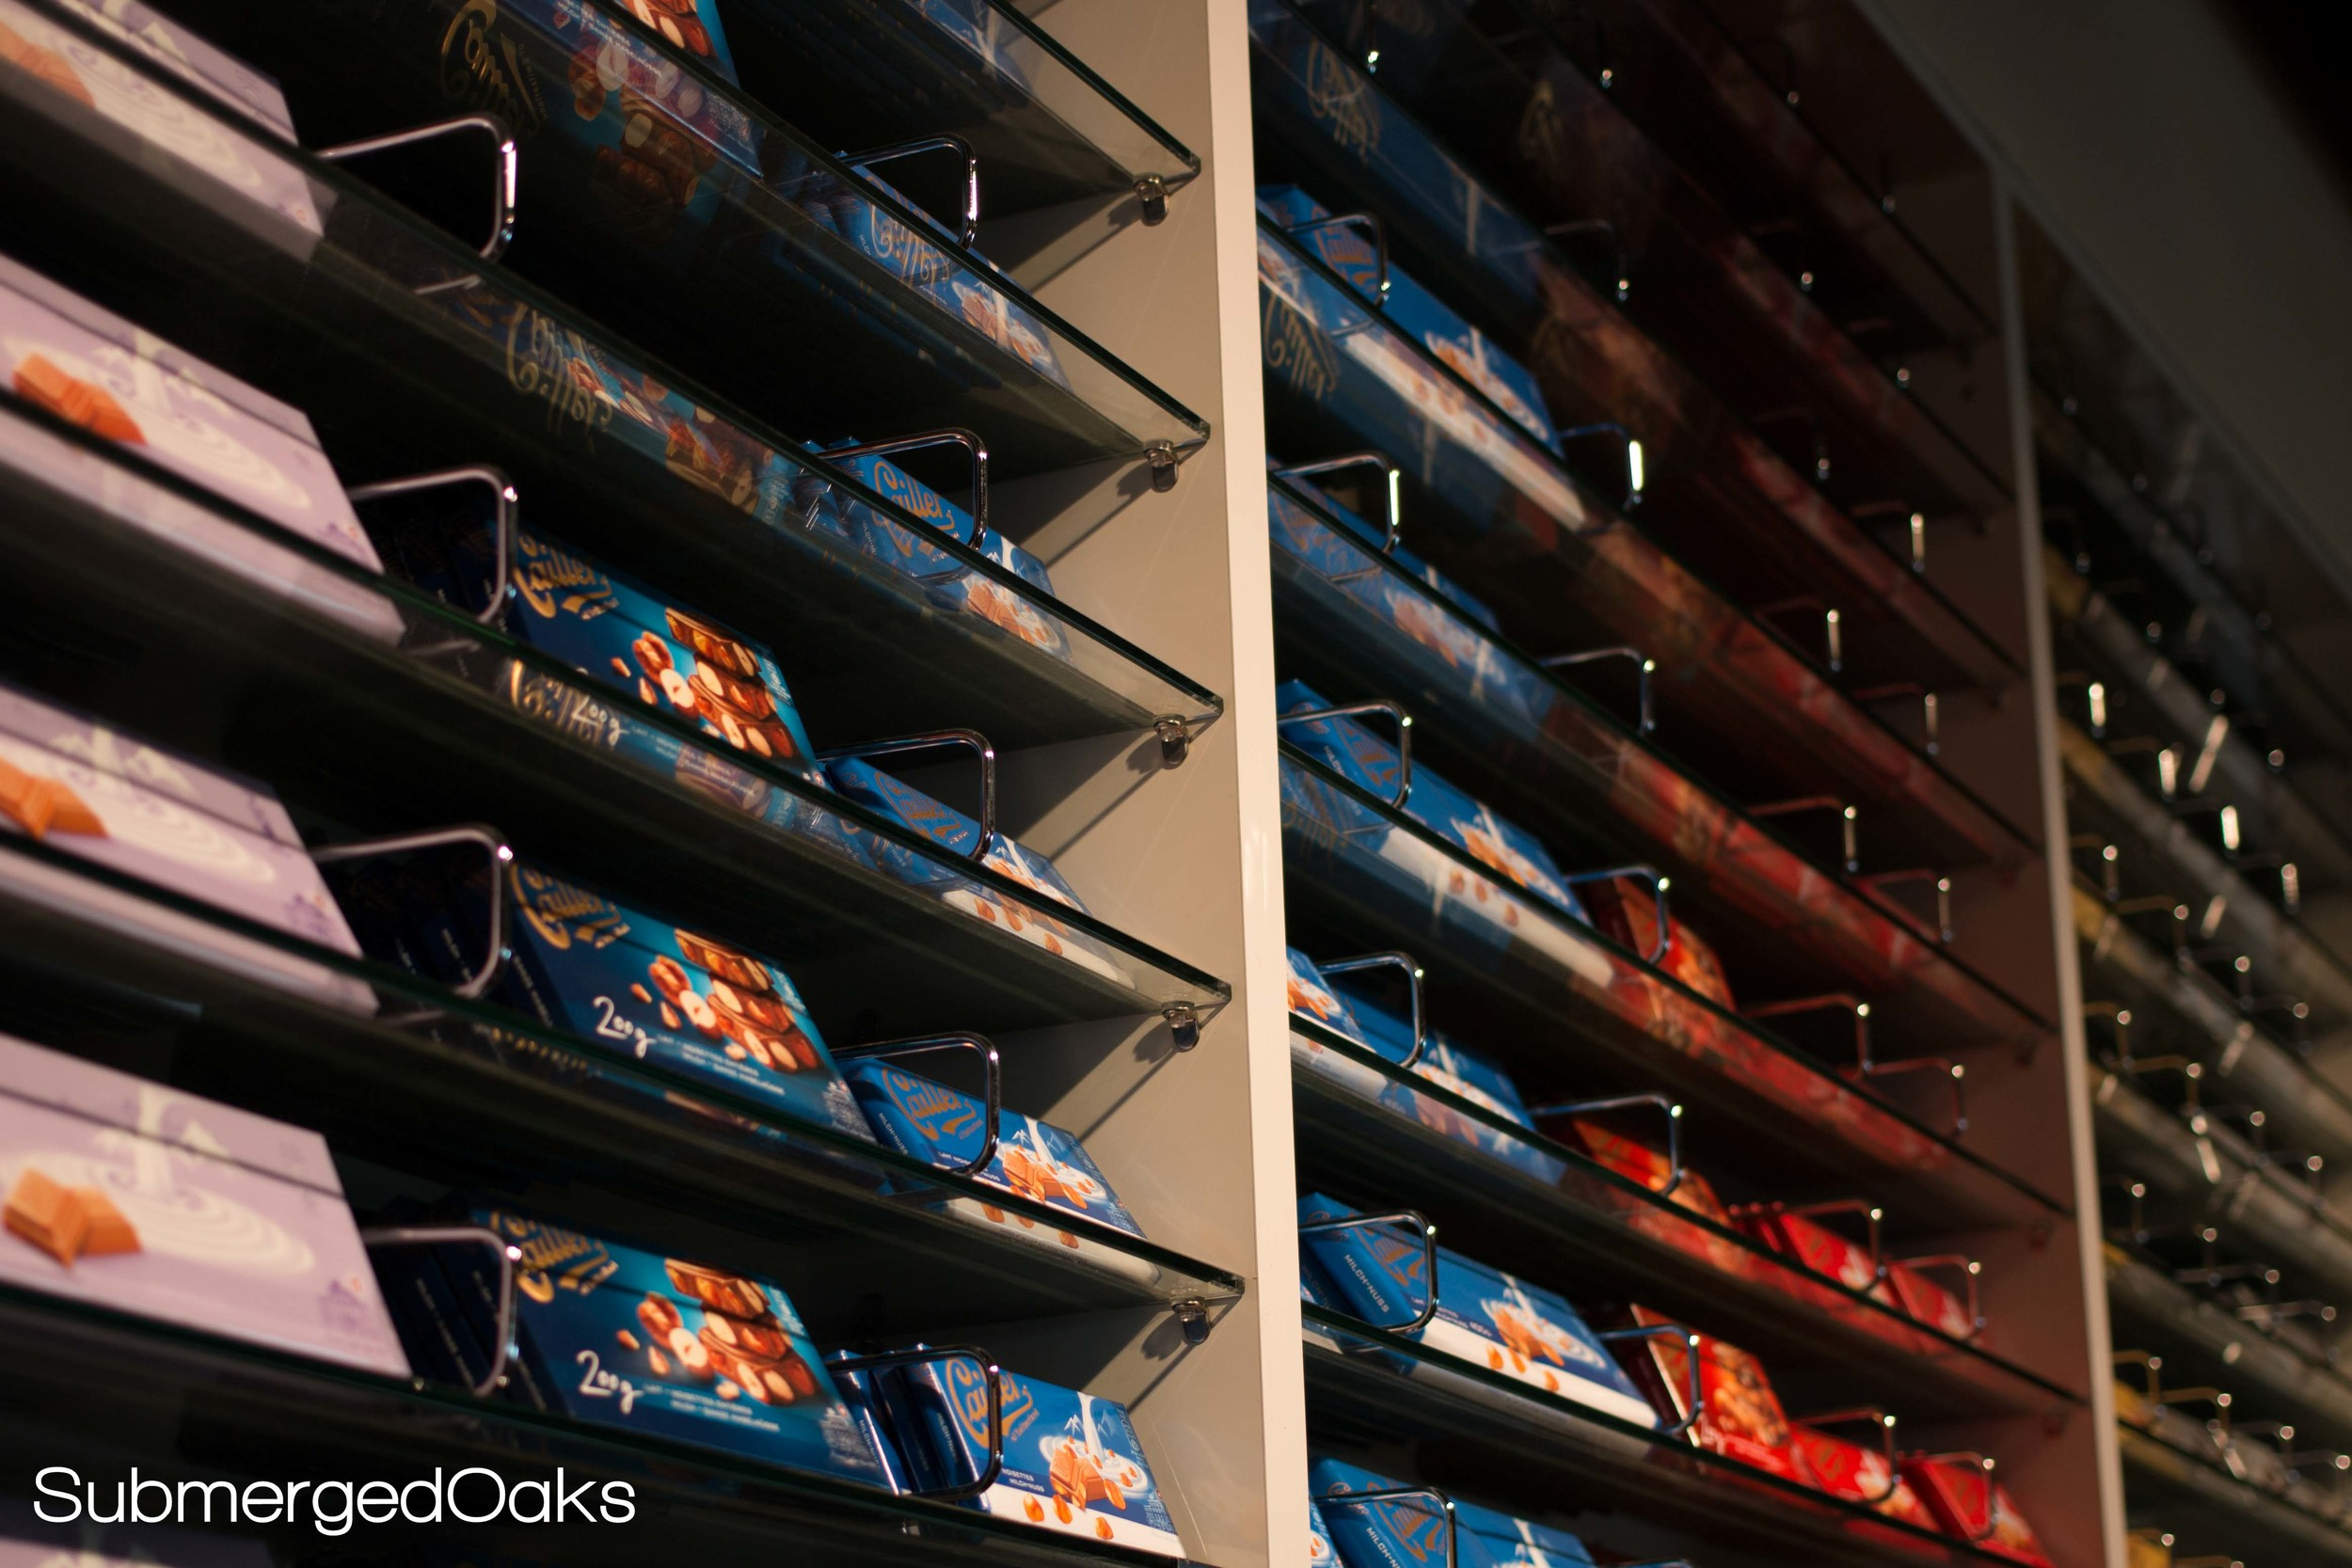 Wall of CHocolate - the dream come true of a pregnant lady!